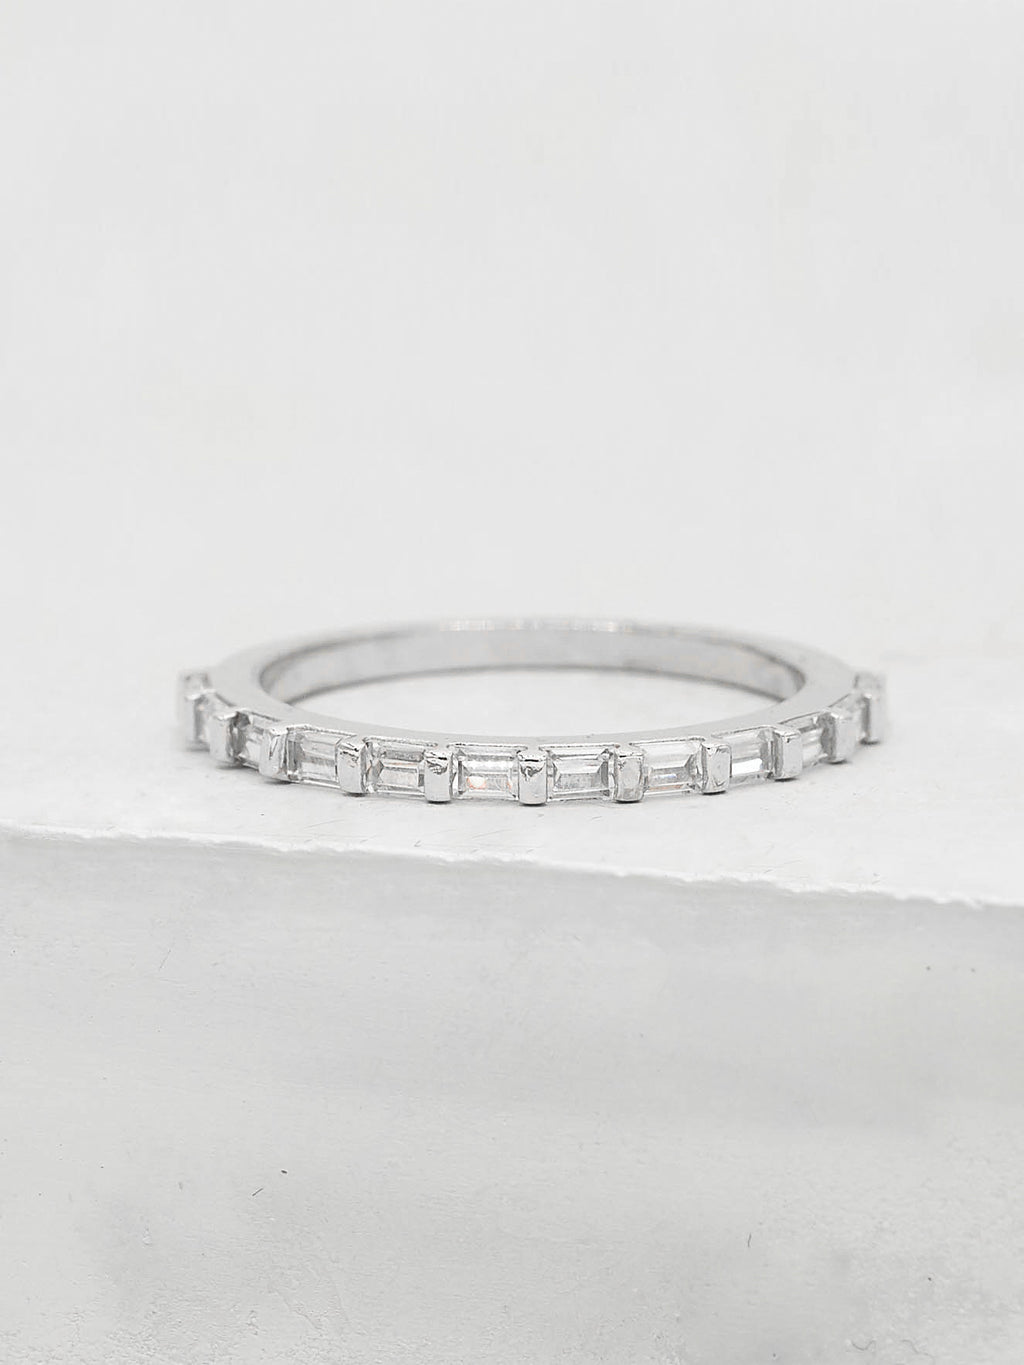 Mini Baguette Eternity Band - Silver